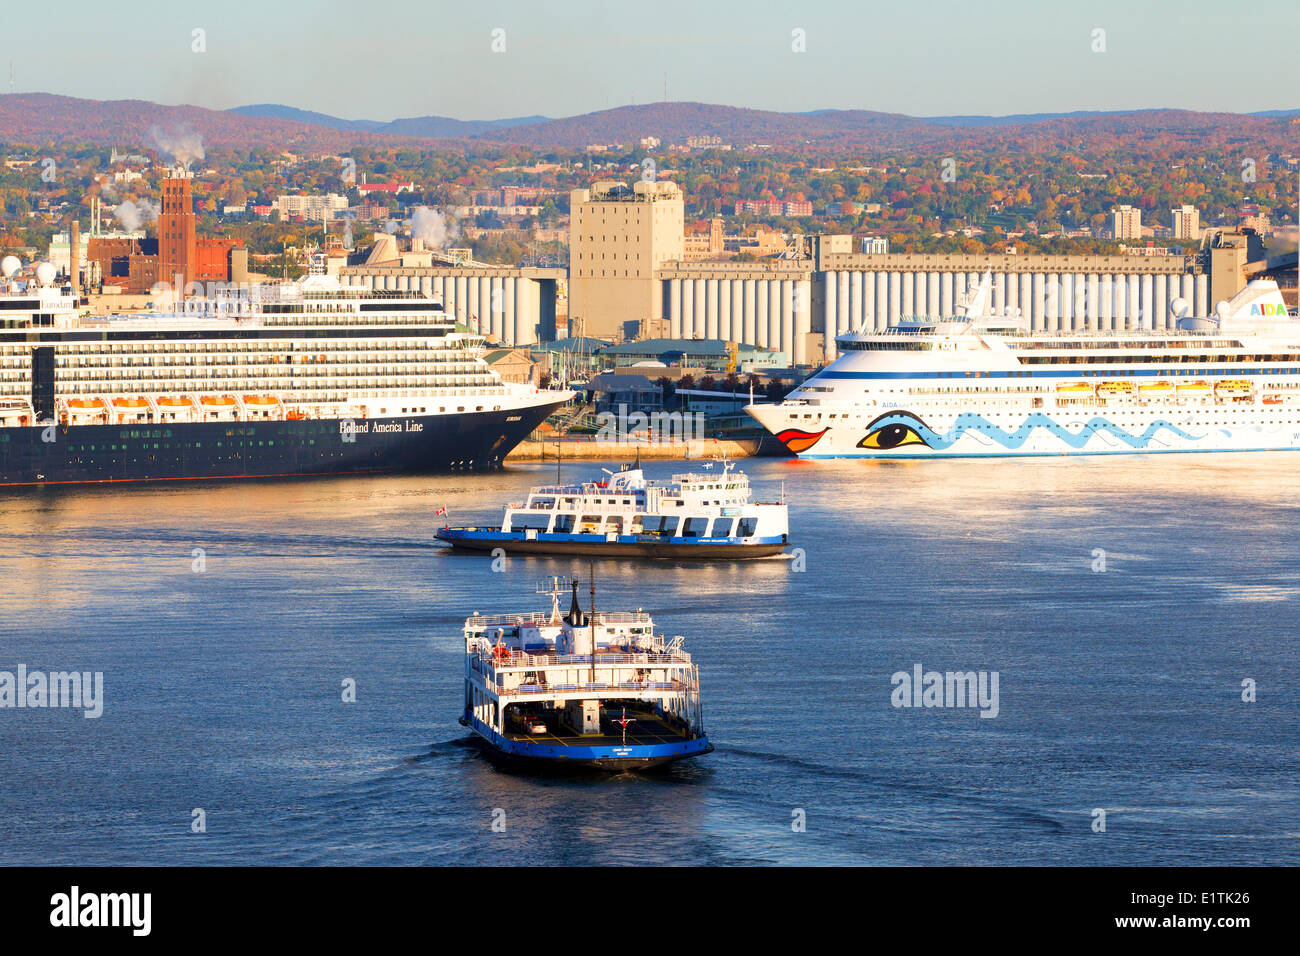 Car ferries crossing the St. Lawrence River in front of cruise ship docked at Quebec City, Quebec, Canada Stock Photo